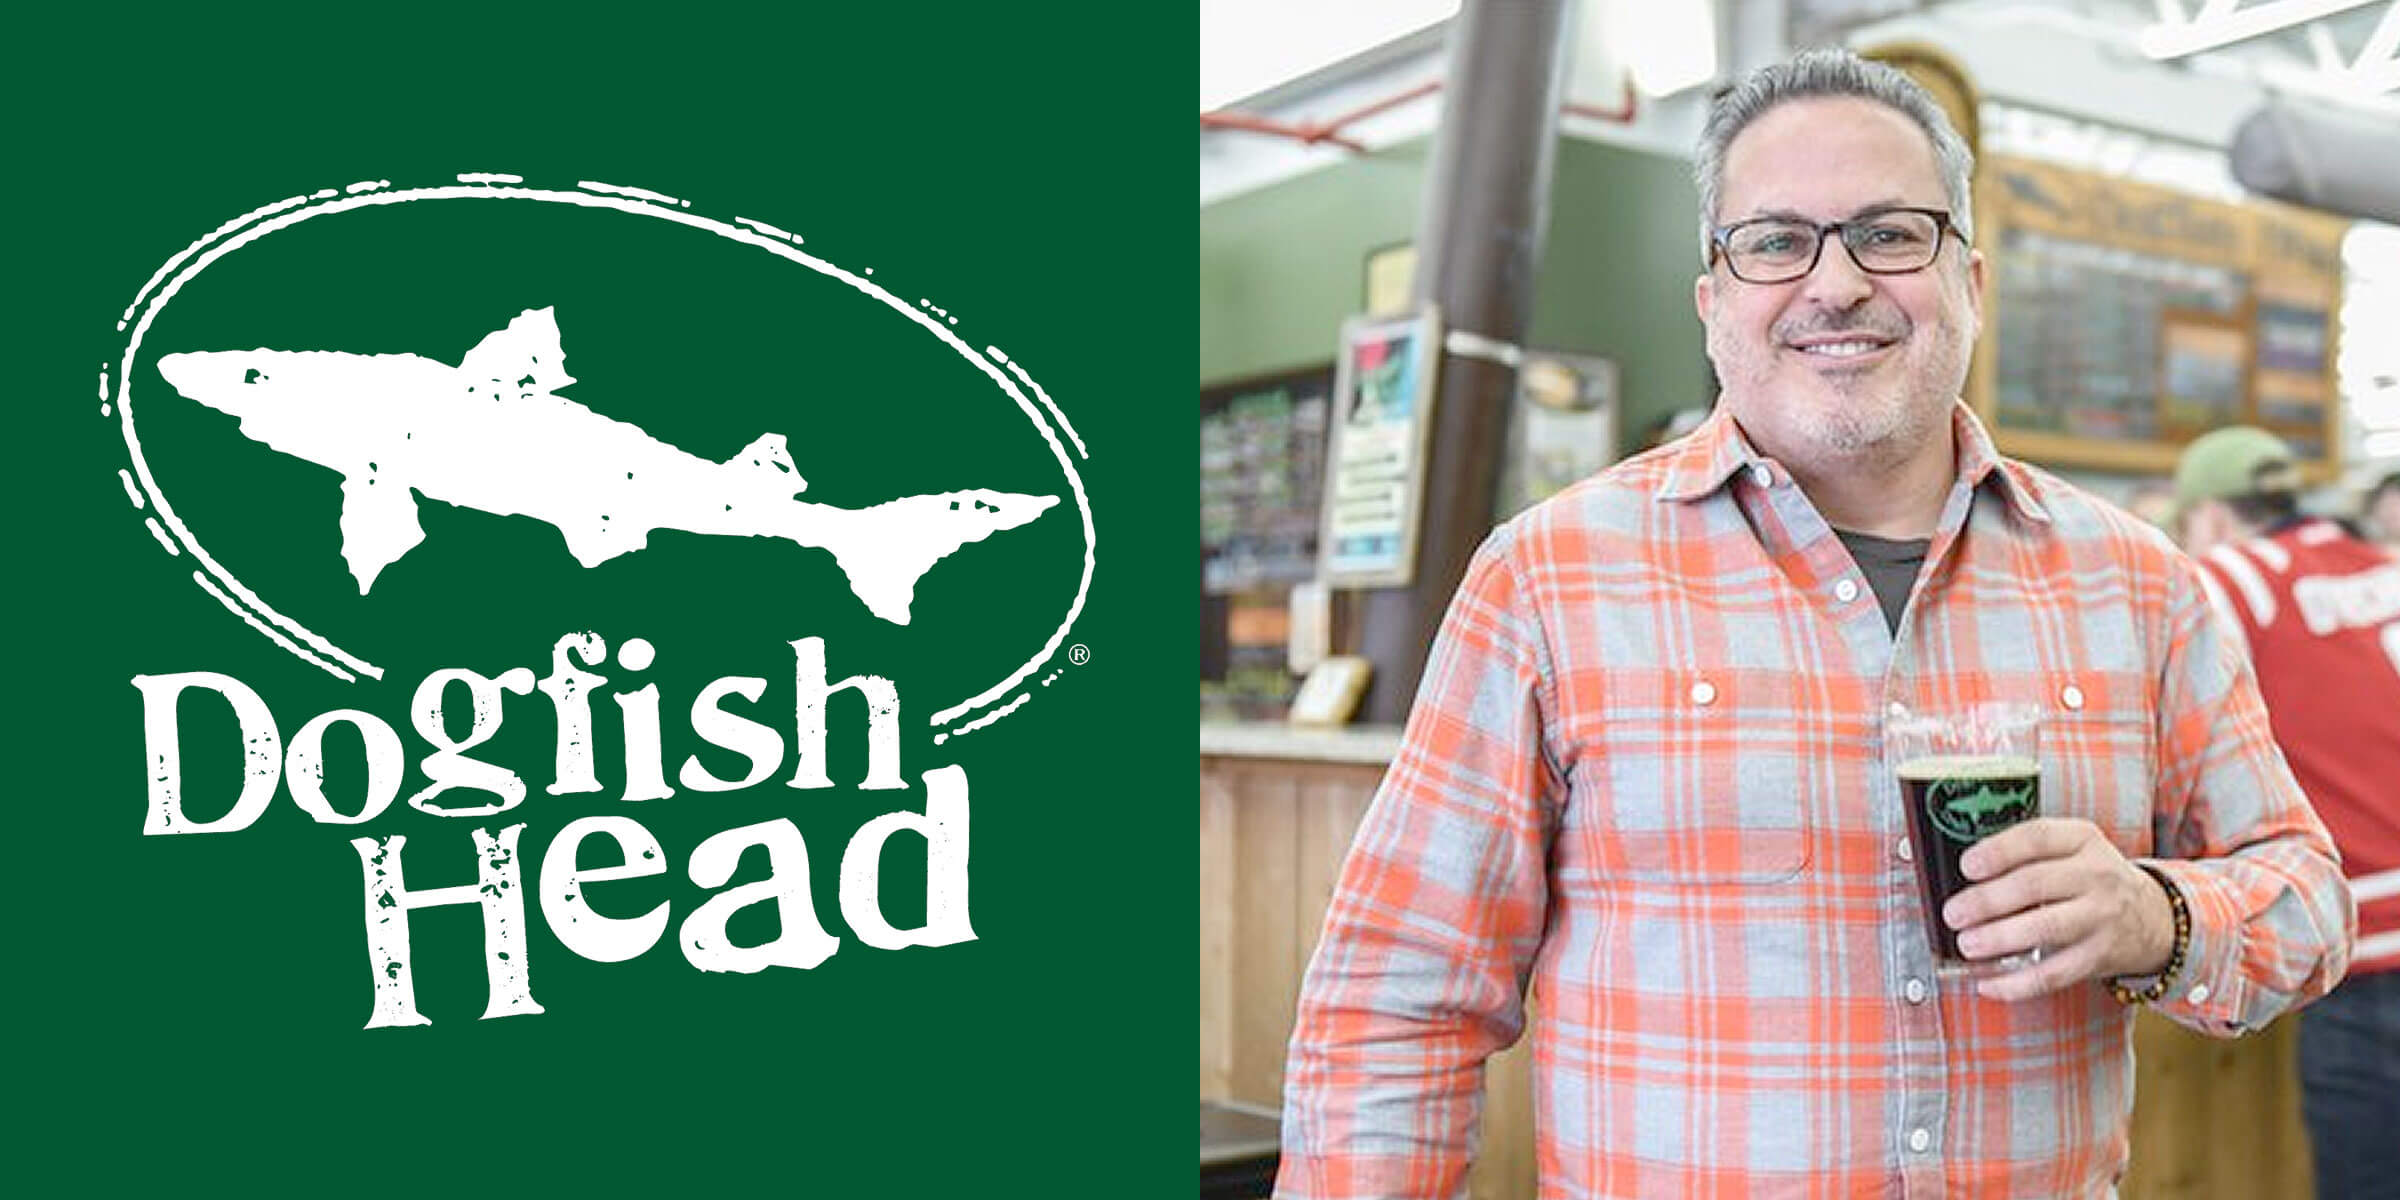 Dogfish Head Craft Brewery president and COO George Pastrana will exit the company on Friday, February 14th, to pursue other opportunities.